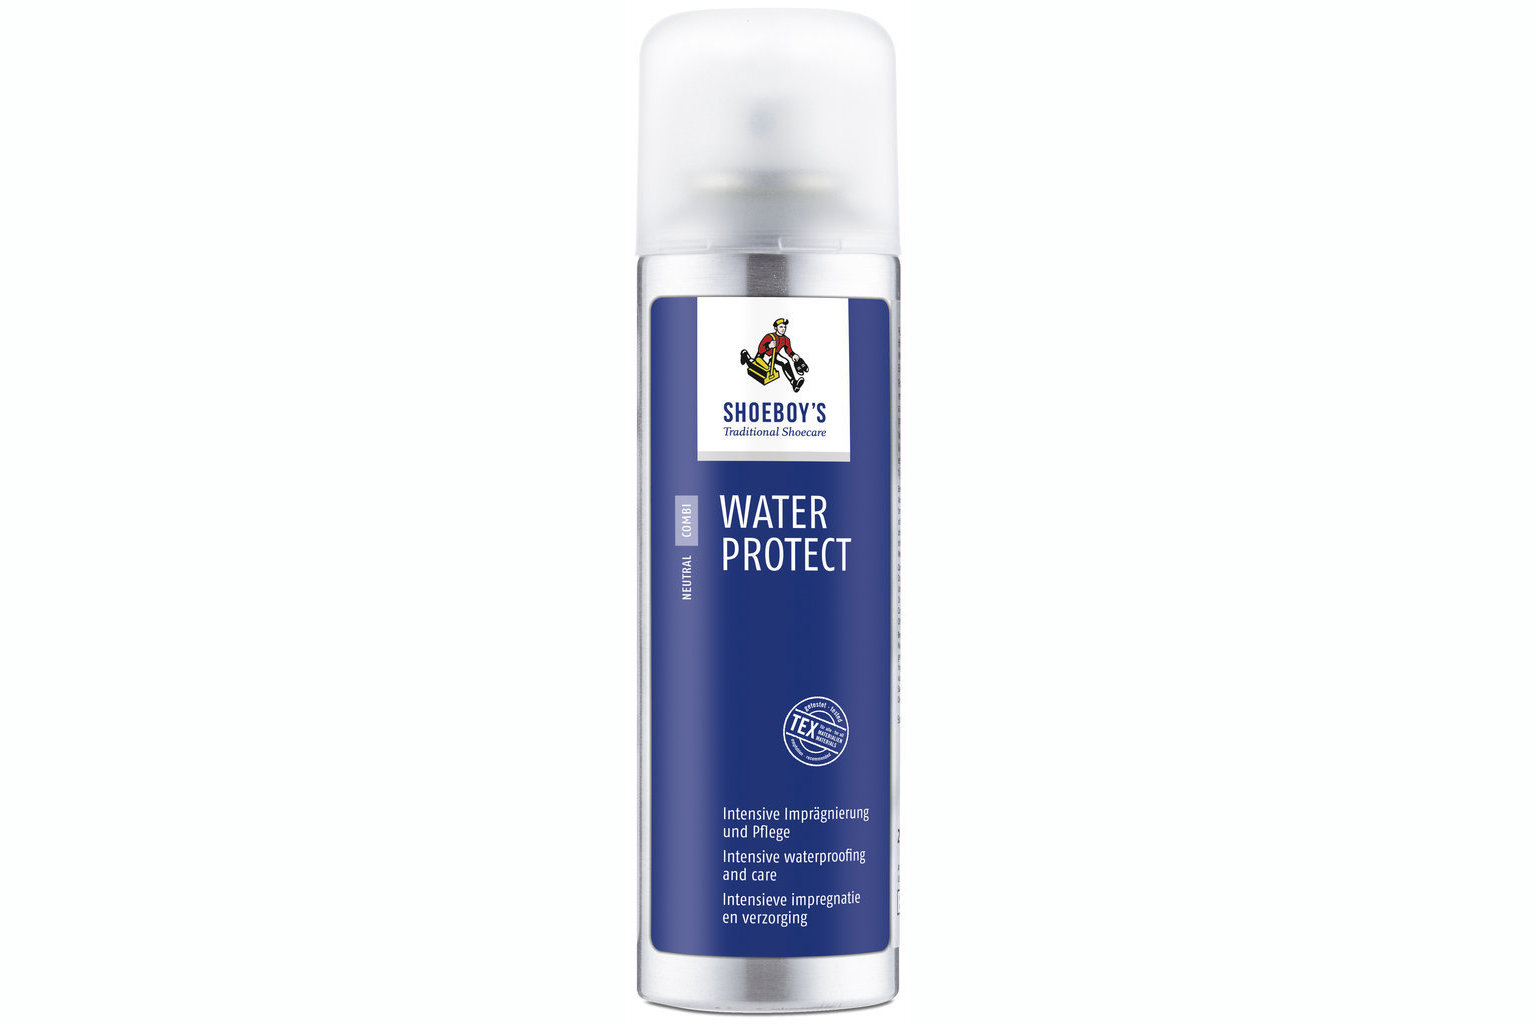 Shoeboy's Water Protect 200ml